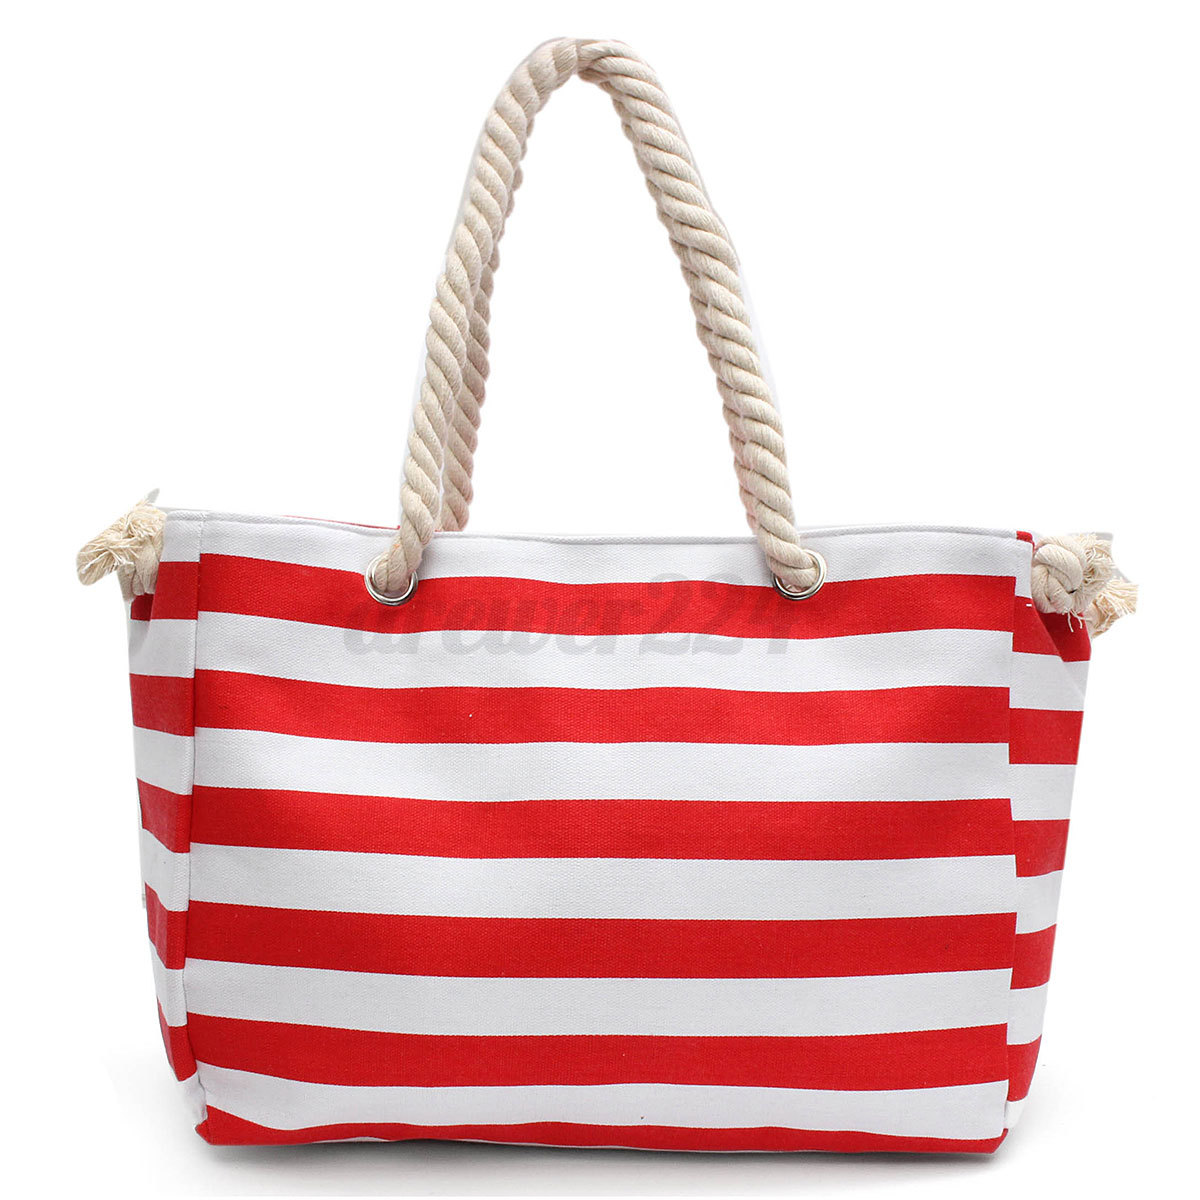 Rope Handle Beach Bag Canvas Striped Holiday Handbag Shopper Tote Shopping Bag